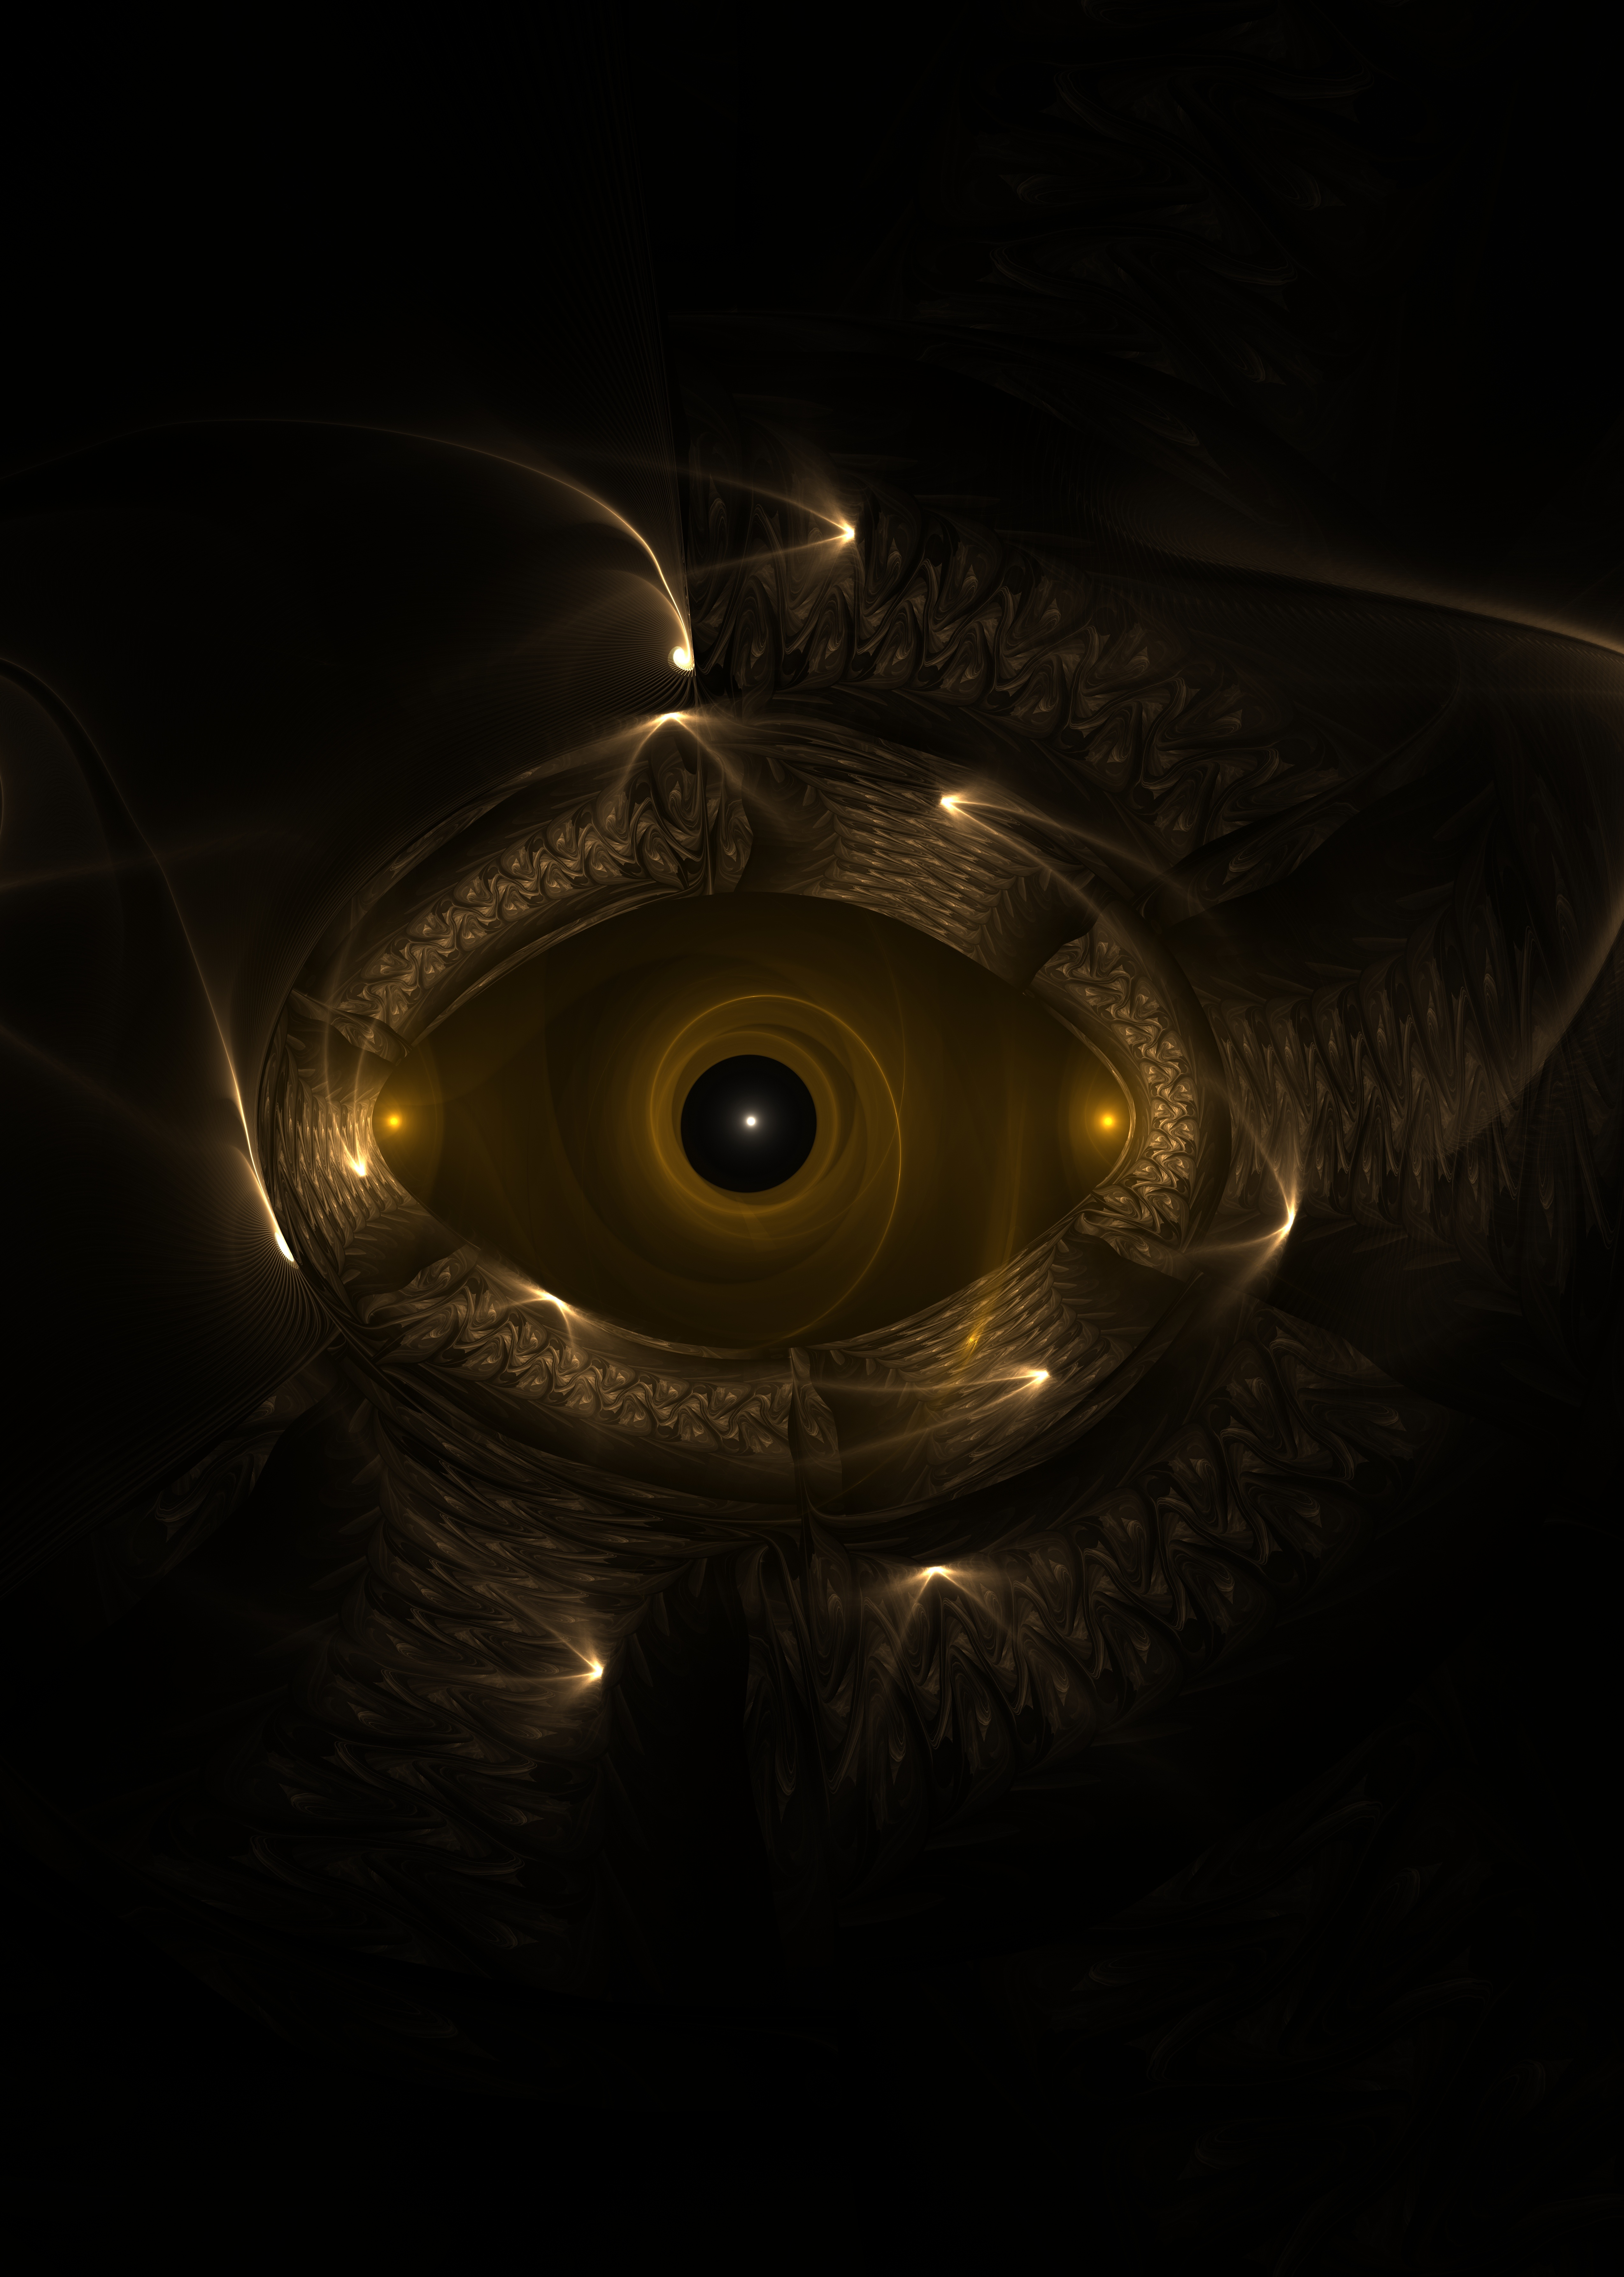 139466 download wallpaper Abstract, Fractal, Eye, Form, Patterns screensavers and pictures for free